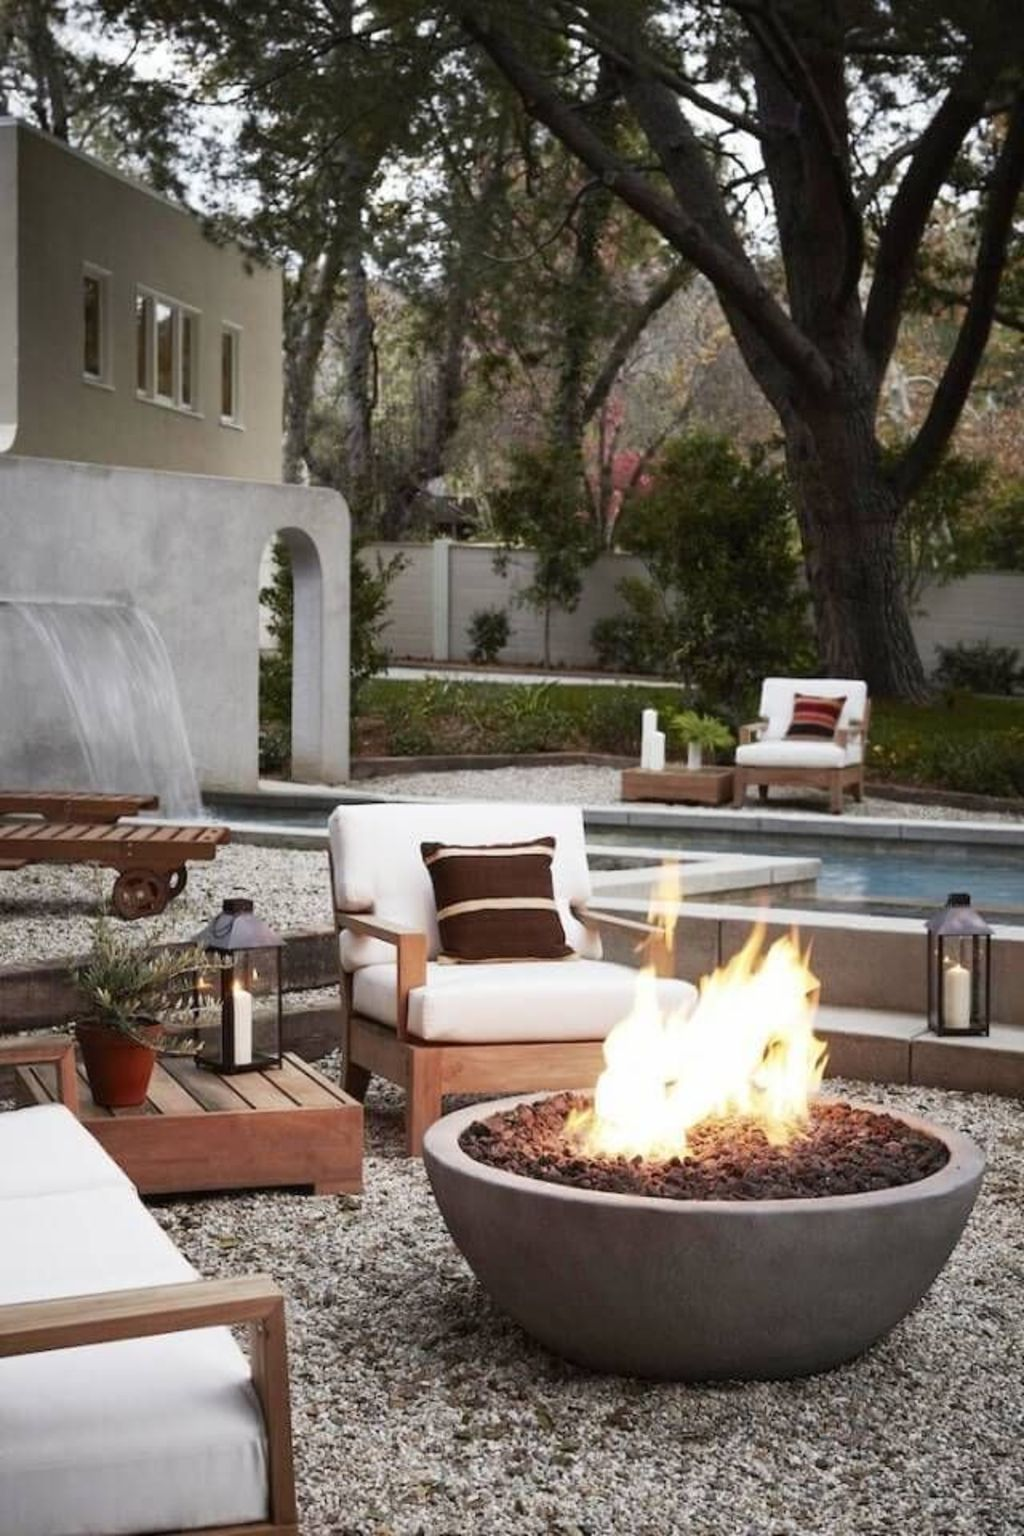 Classic mainstay of an outdoor space with the fire pit many of us would spend fond evenings relaxing around the fire Part 21